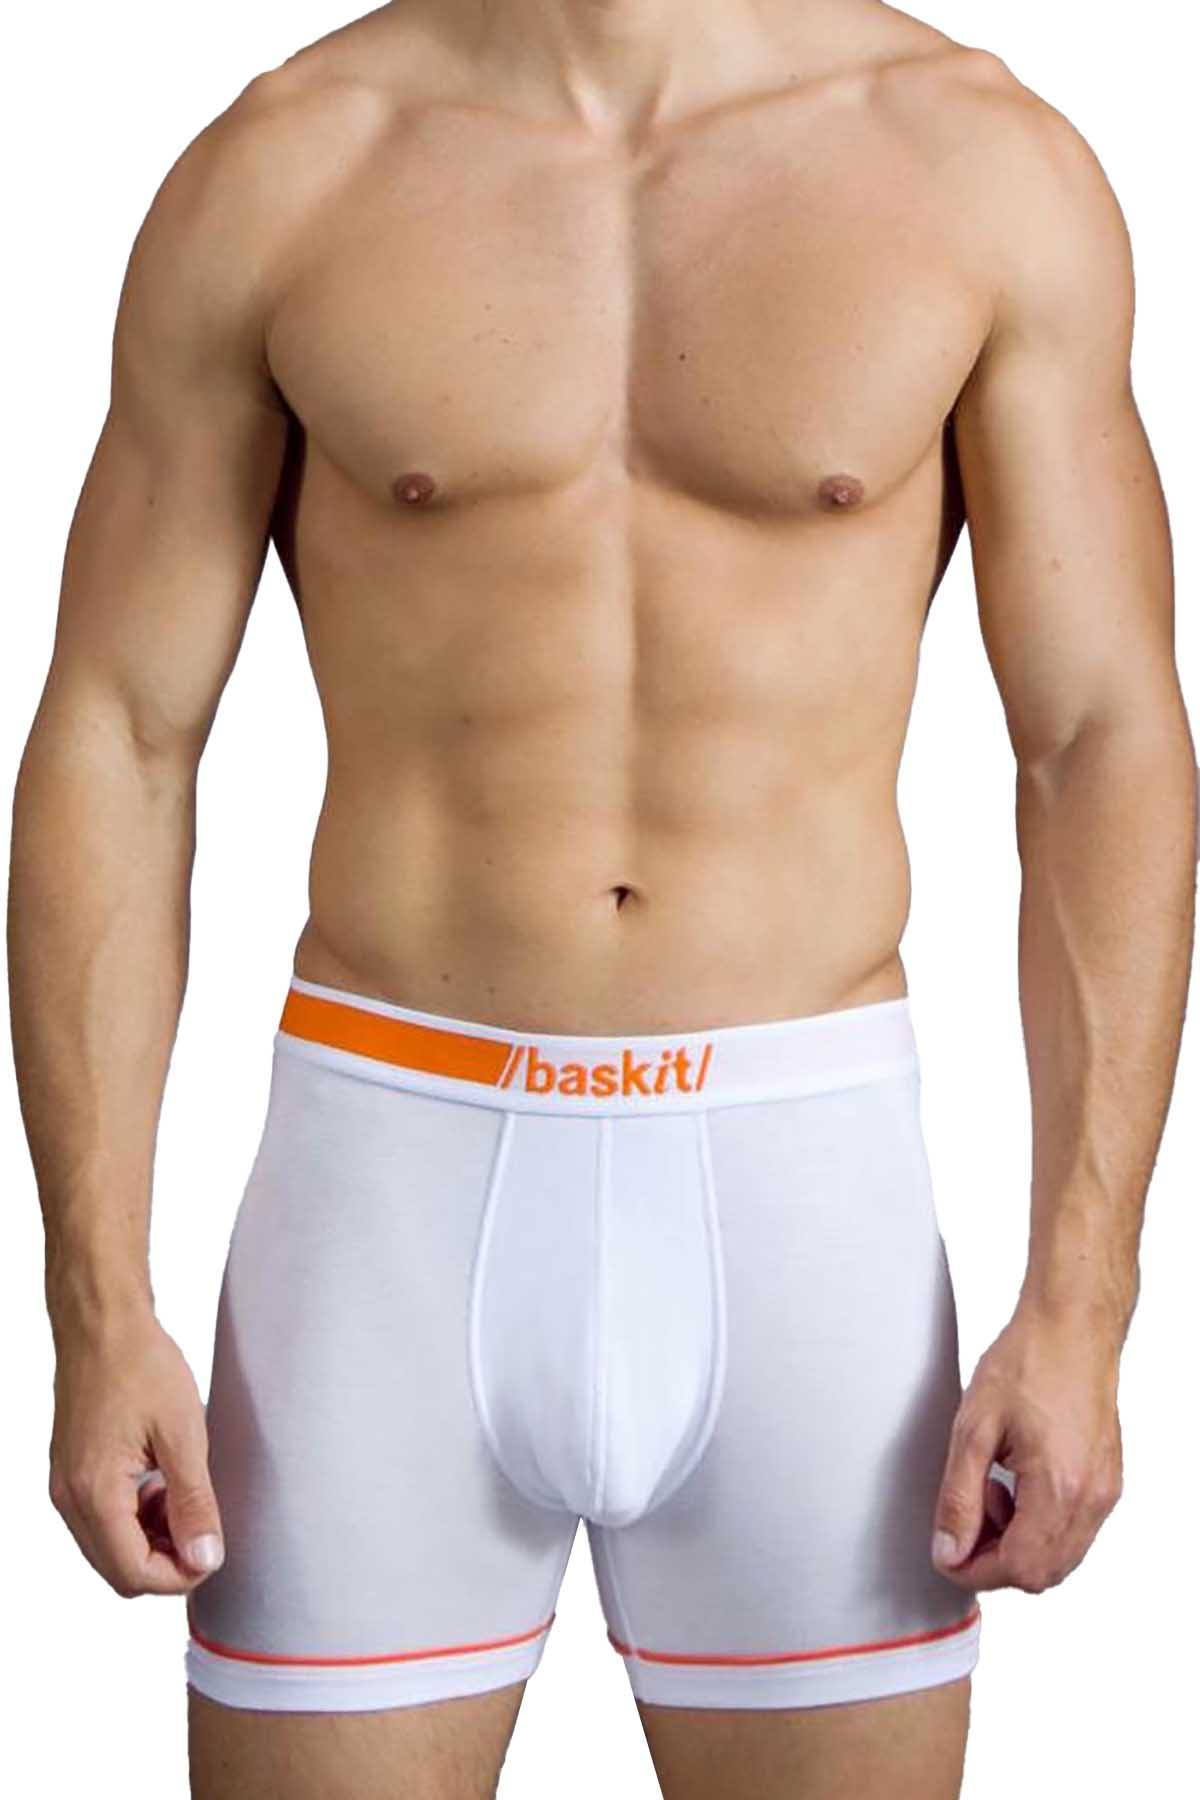 Baskit White (de)luxe boxer brief